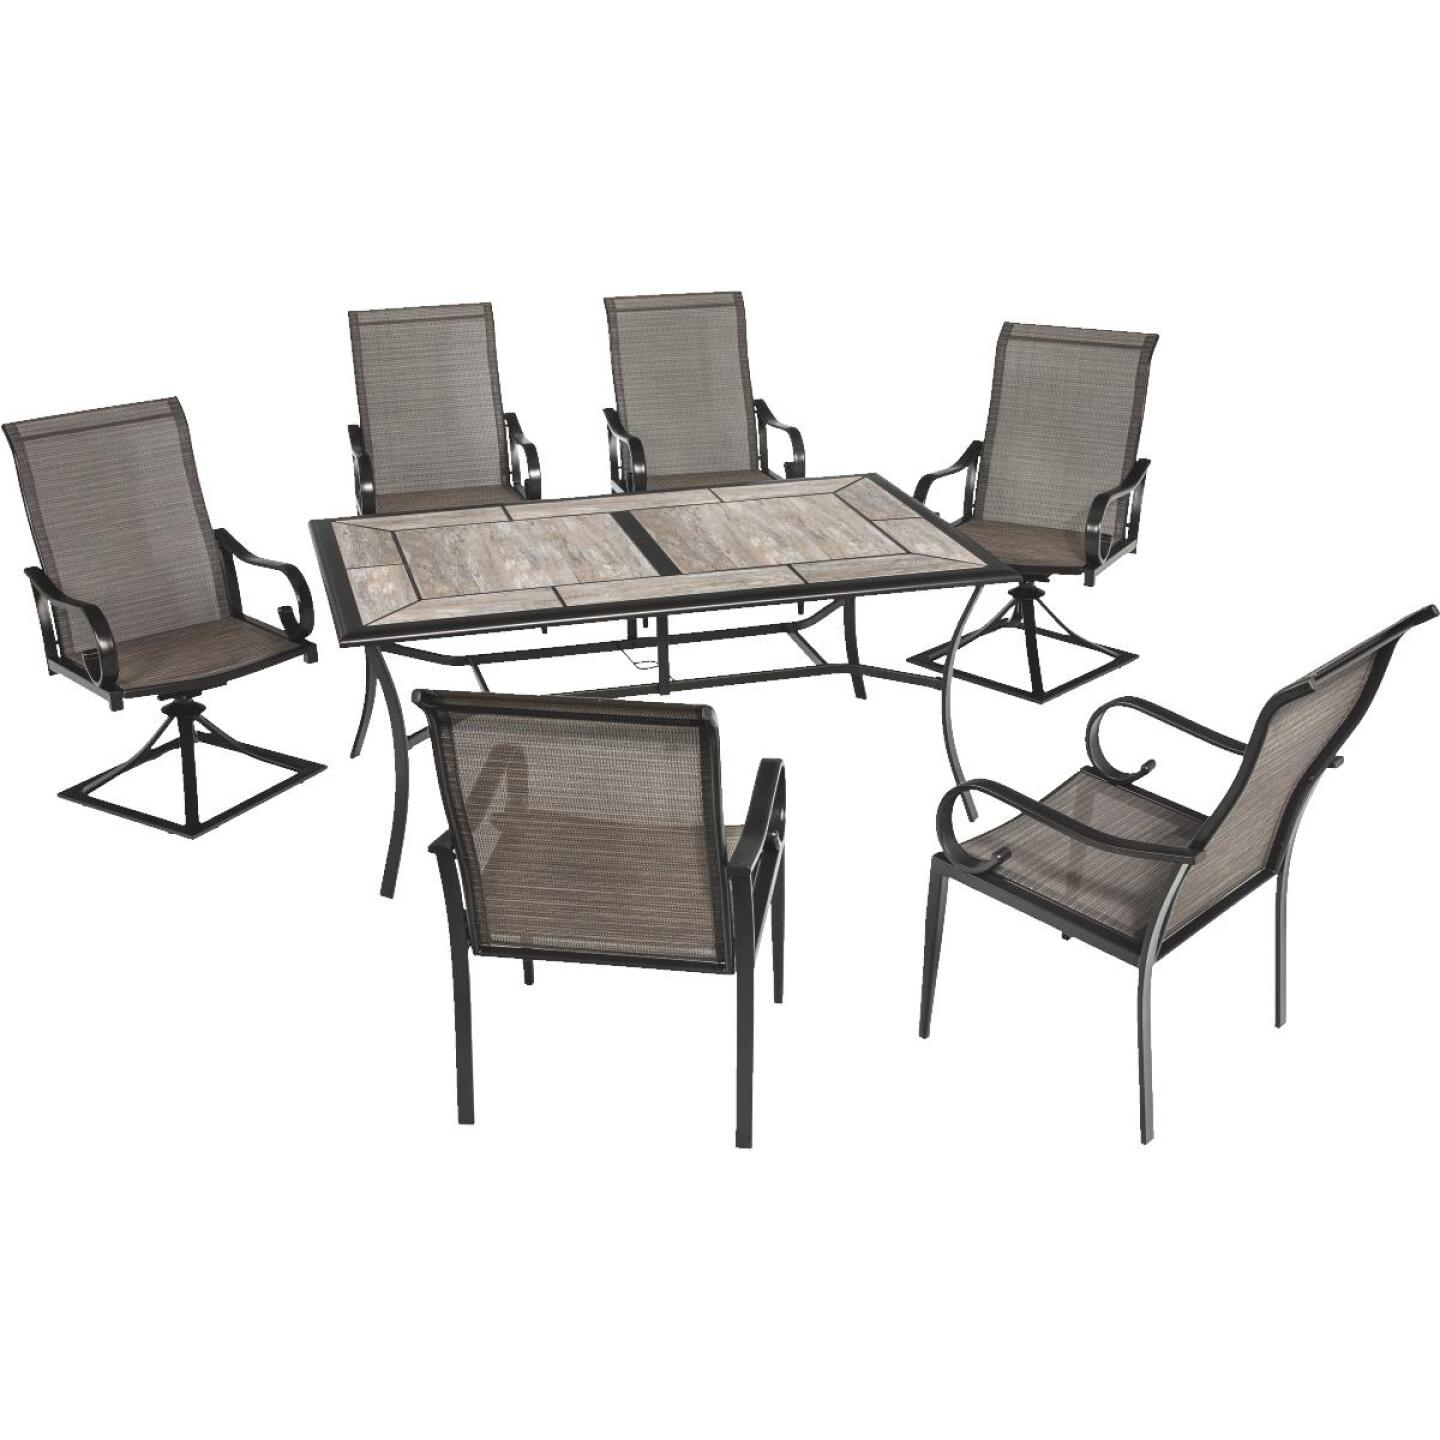 Outdoor Expressions Berkshire 7-Piece Dining Set Image 349